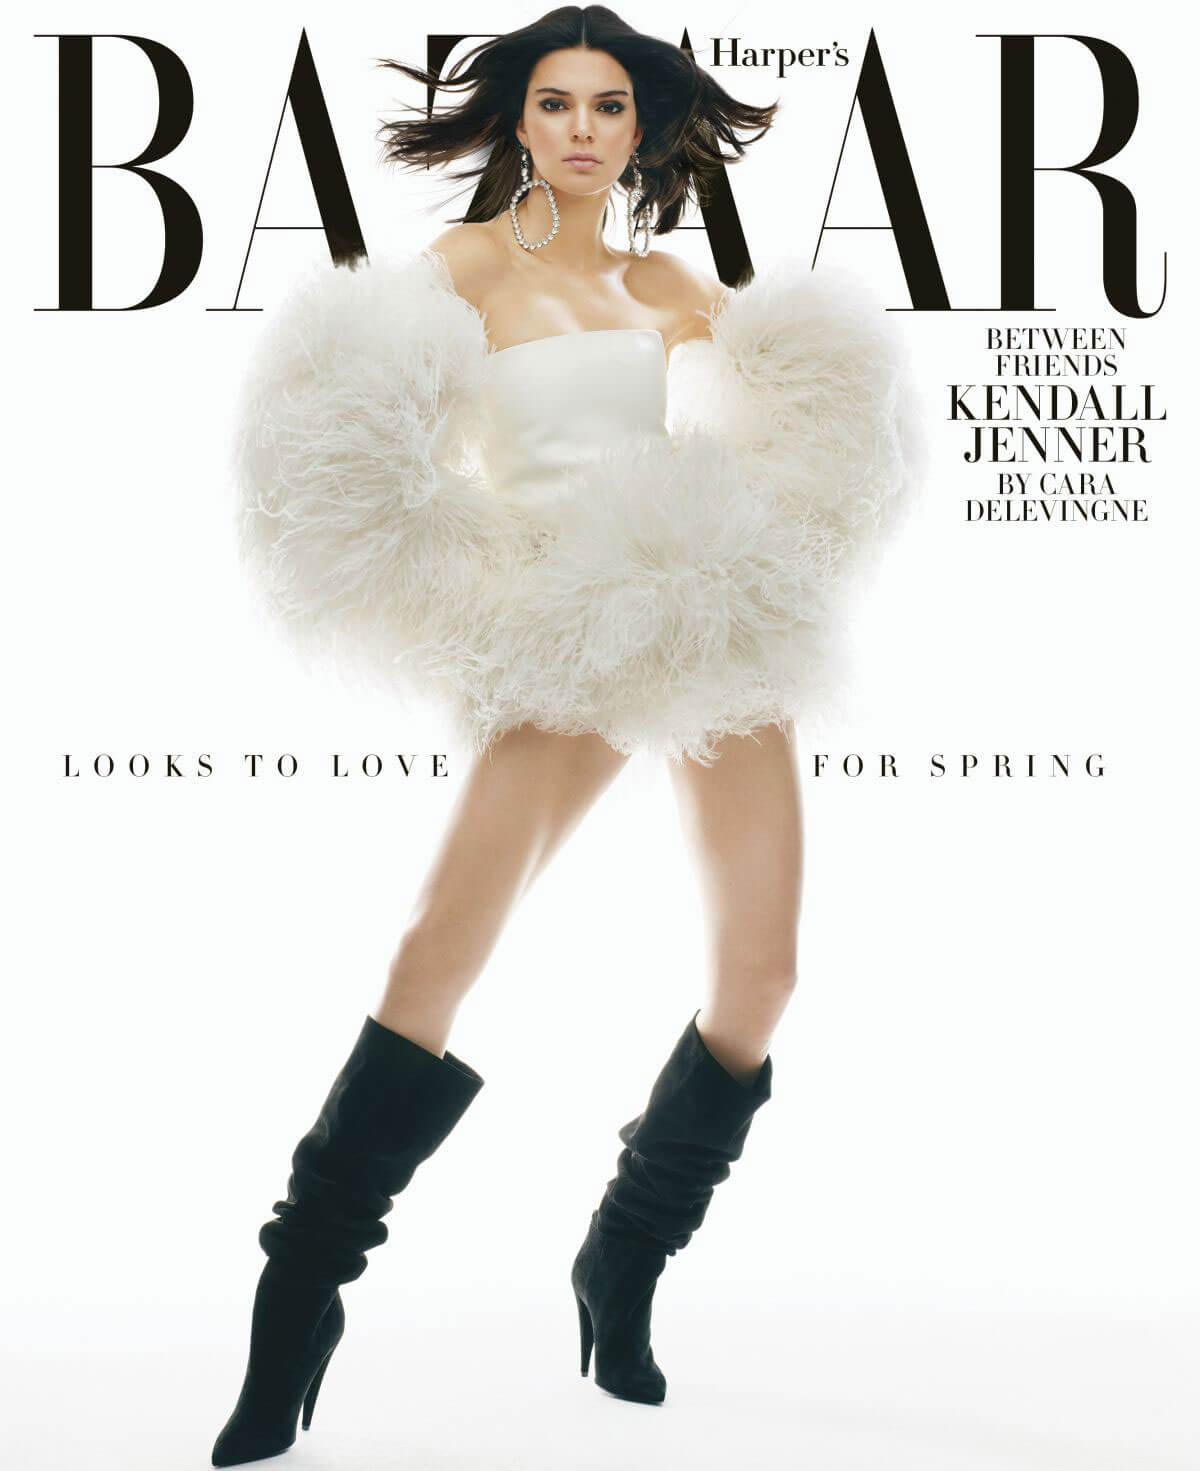 Kendall Jenner Poses for Harper's Bazaar Magazine, February 2018 Issue